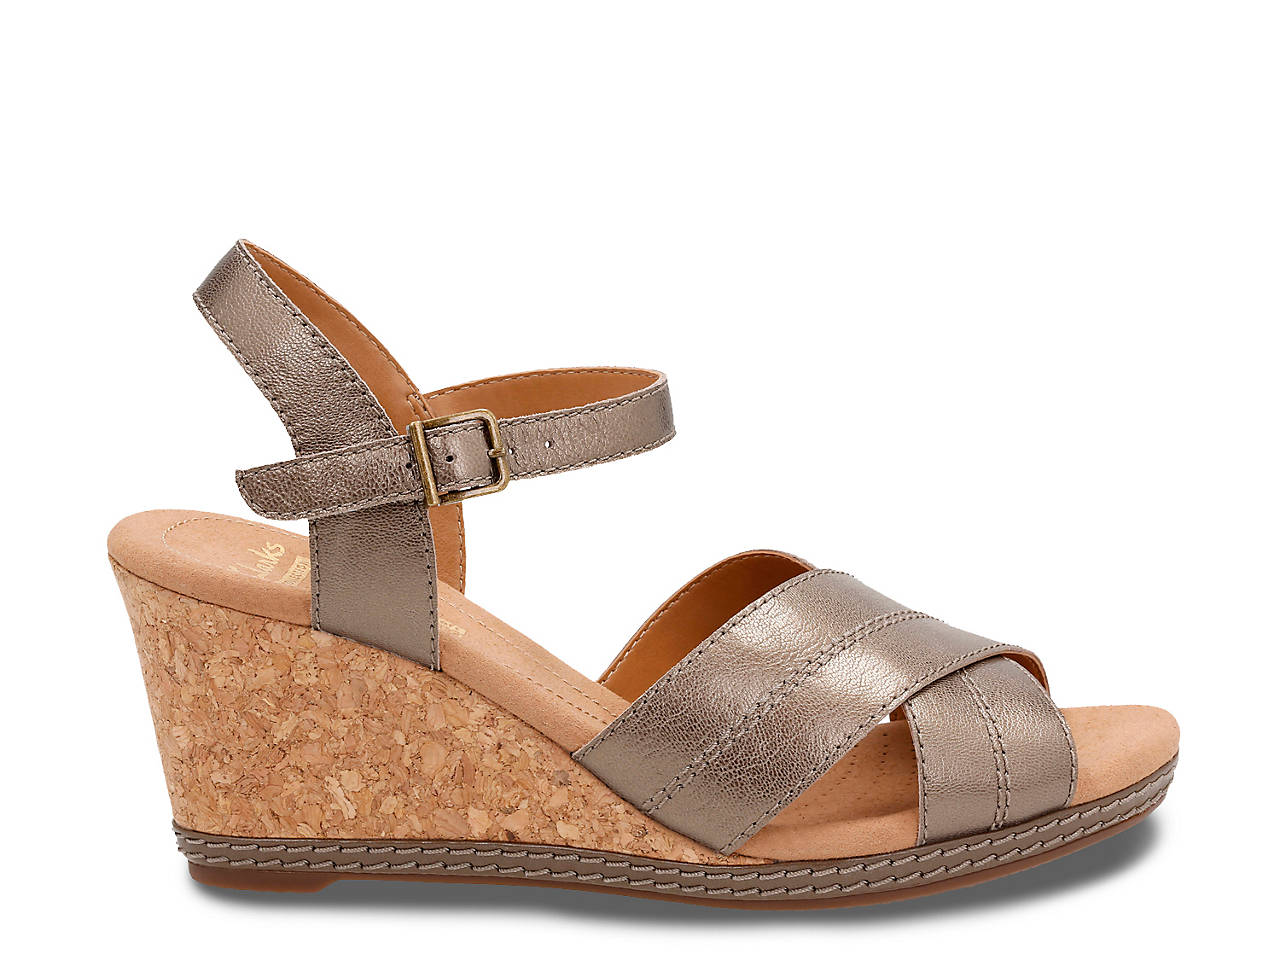 9112688364e Clarks Helio Latitude Wedge Sandal Women s Shoes